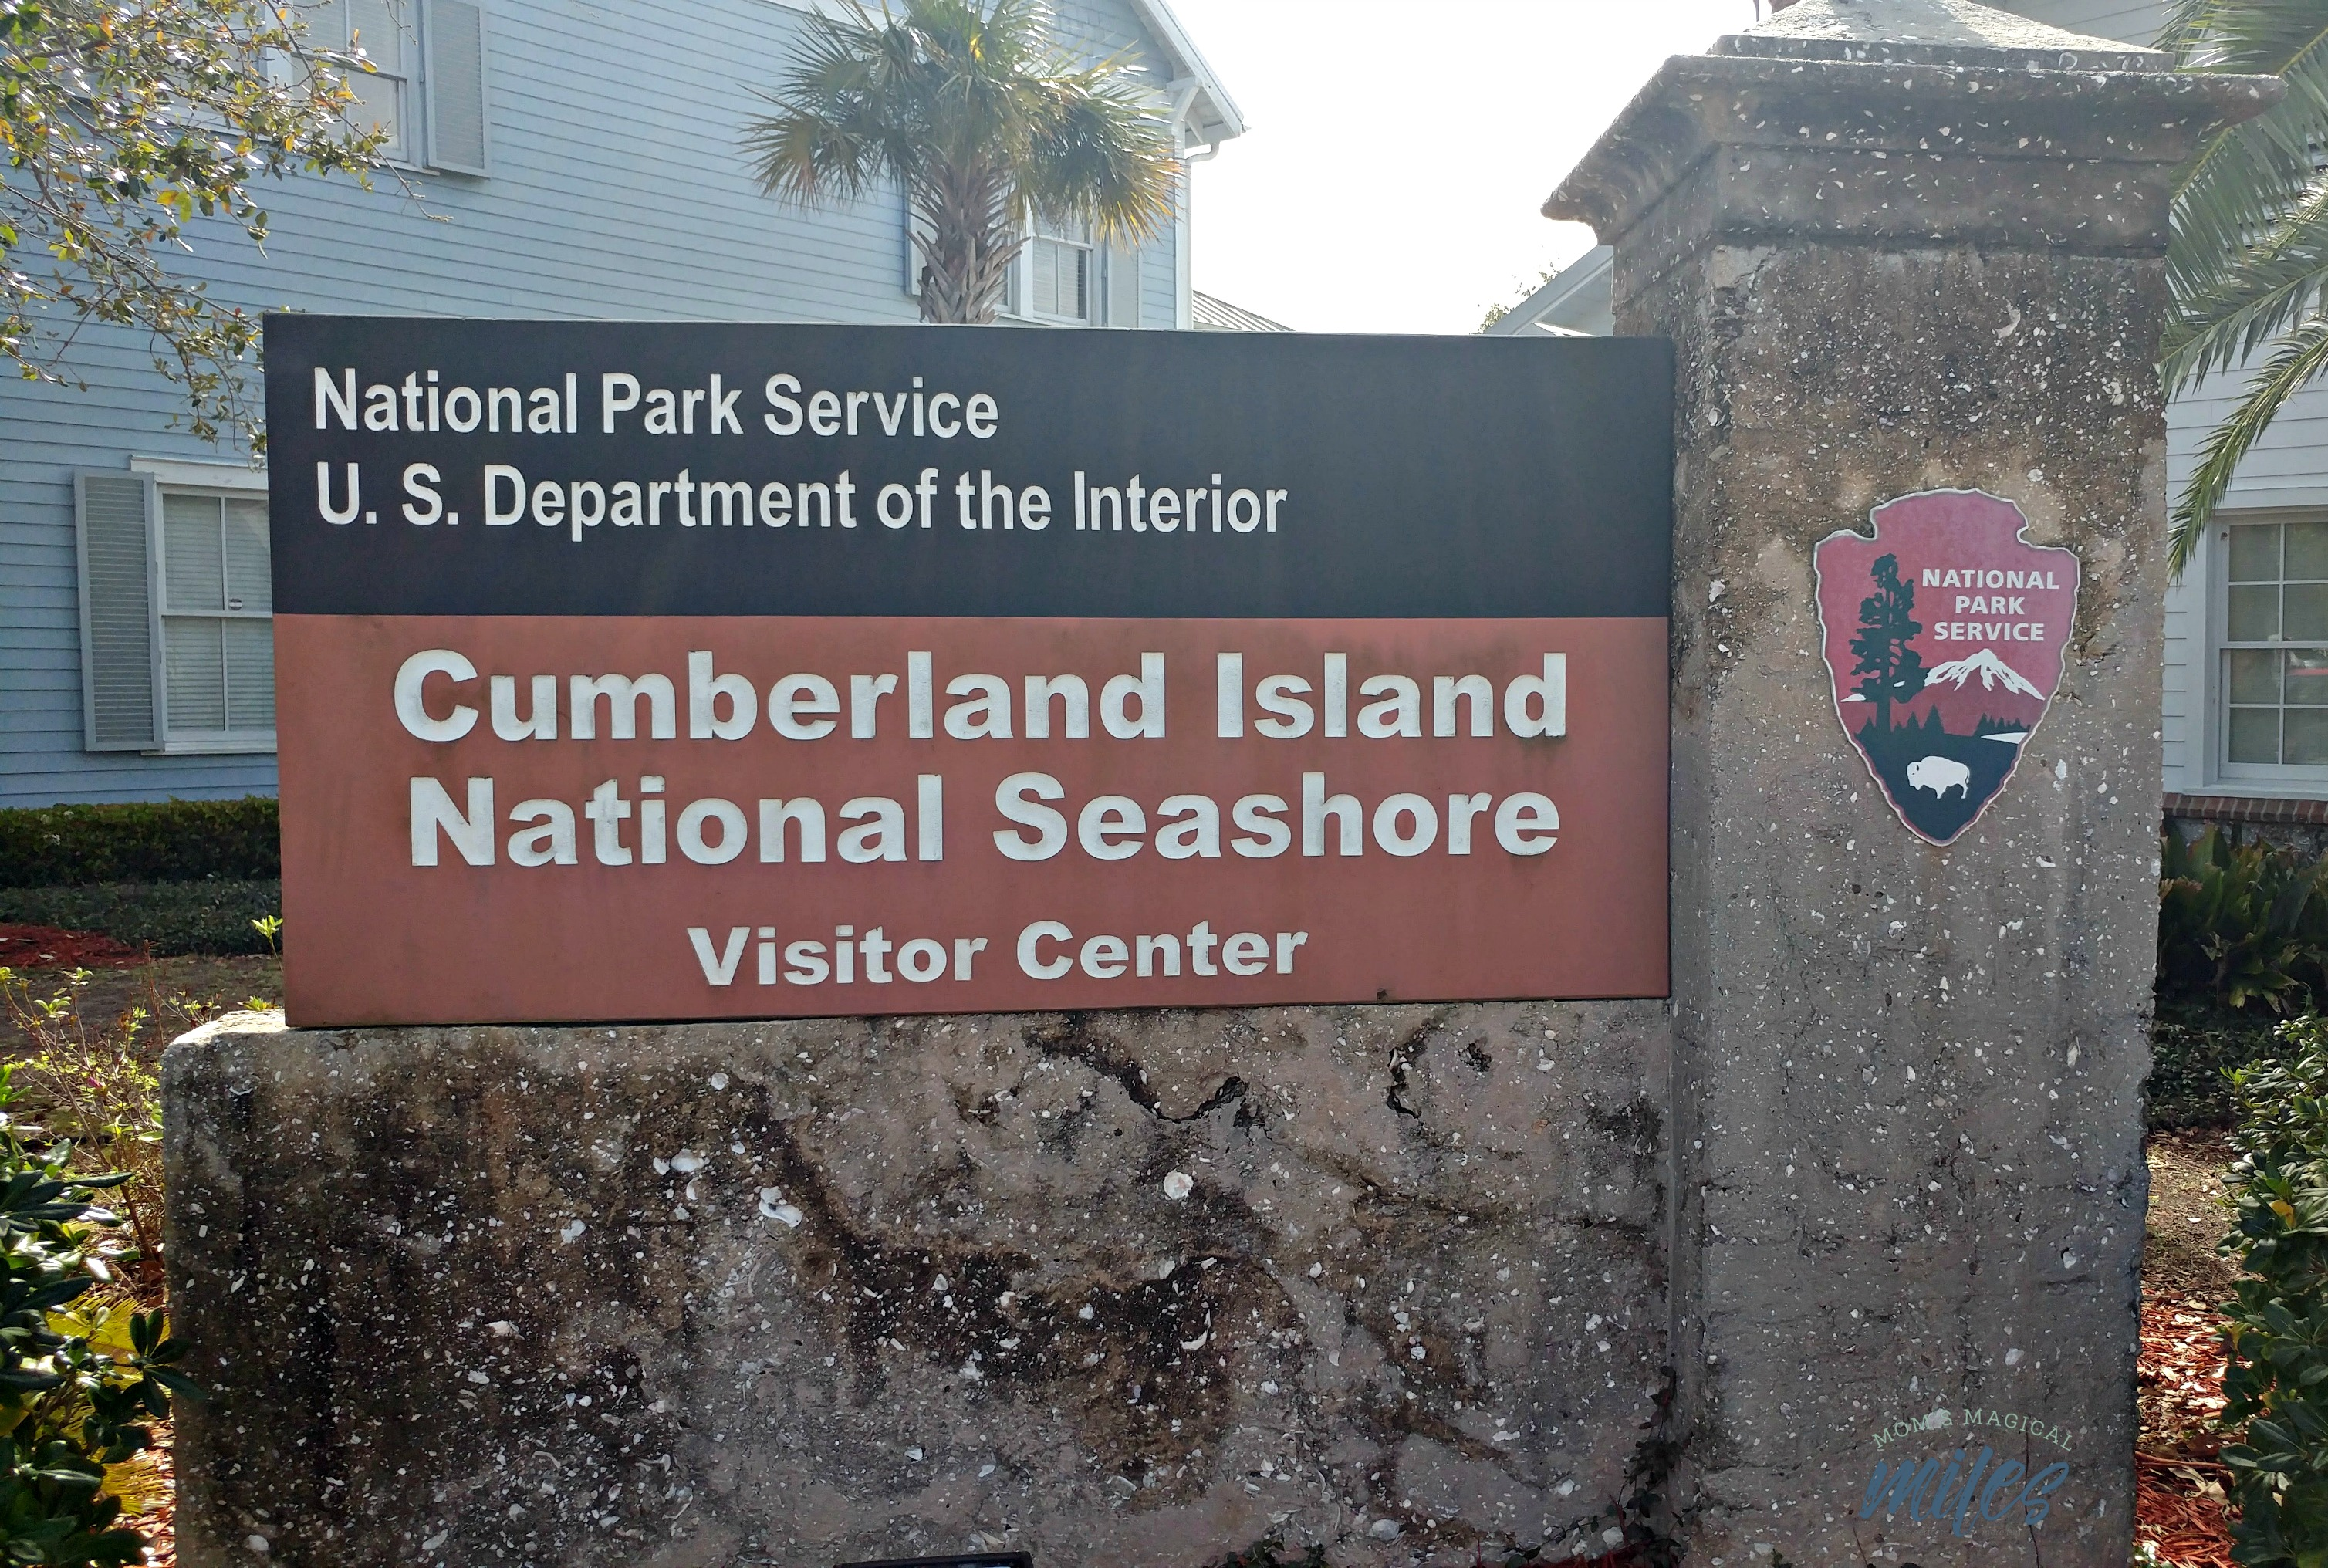 To get to Cumberland Island, you need to go through the visitor's center in St. Mary's, GA.